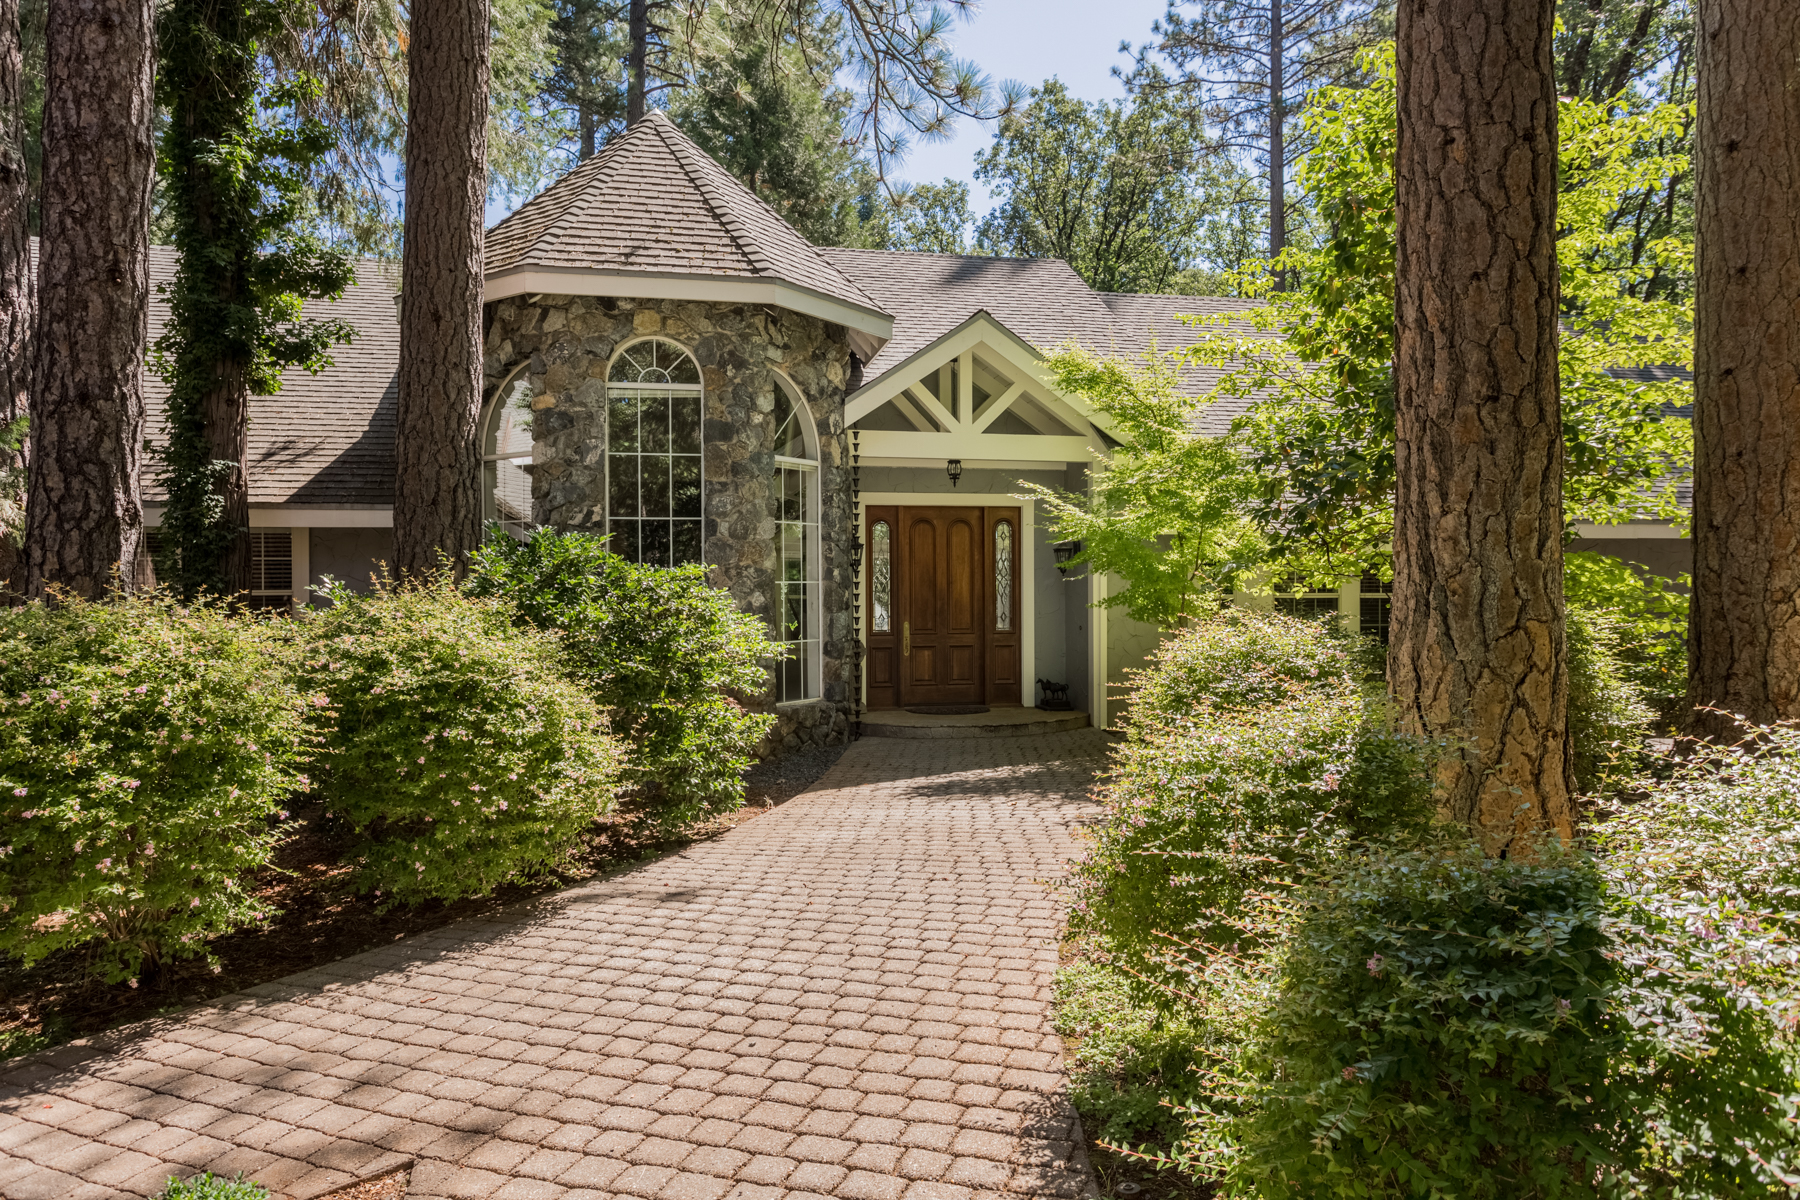 Single Family Home for Sale at 11821Whisperwood Way, Nevada City, CA 11821 Whisperwood Way Nevada City, California 95959 United States